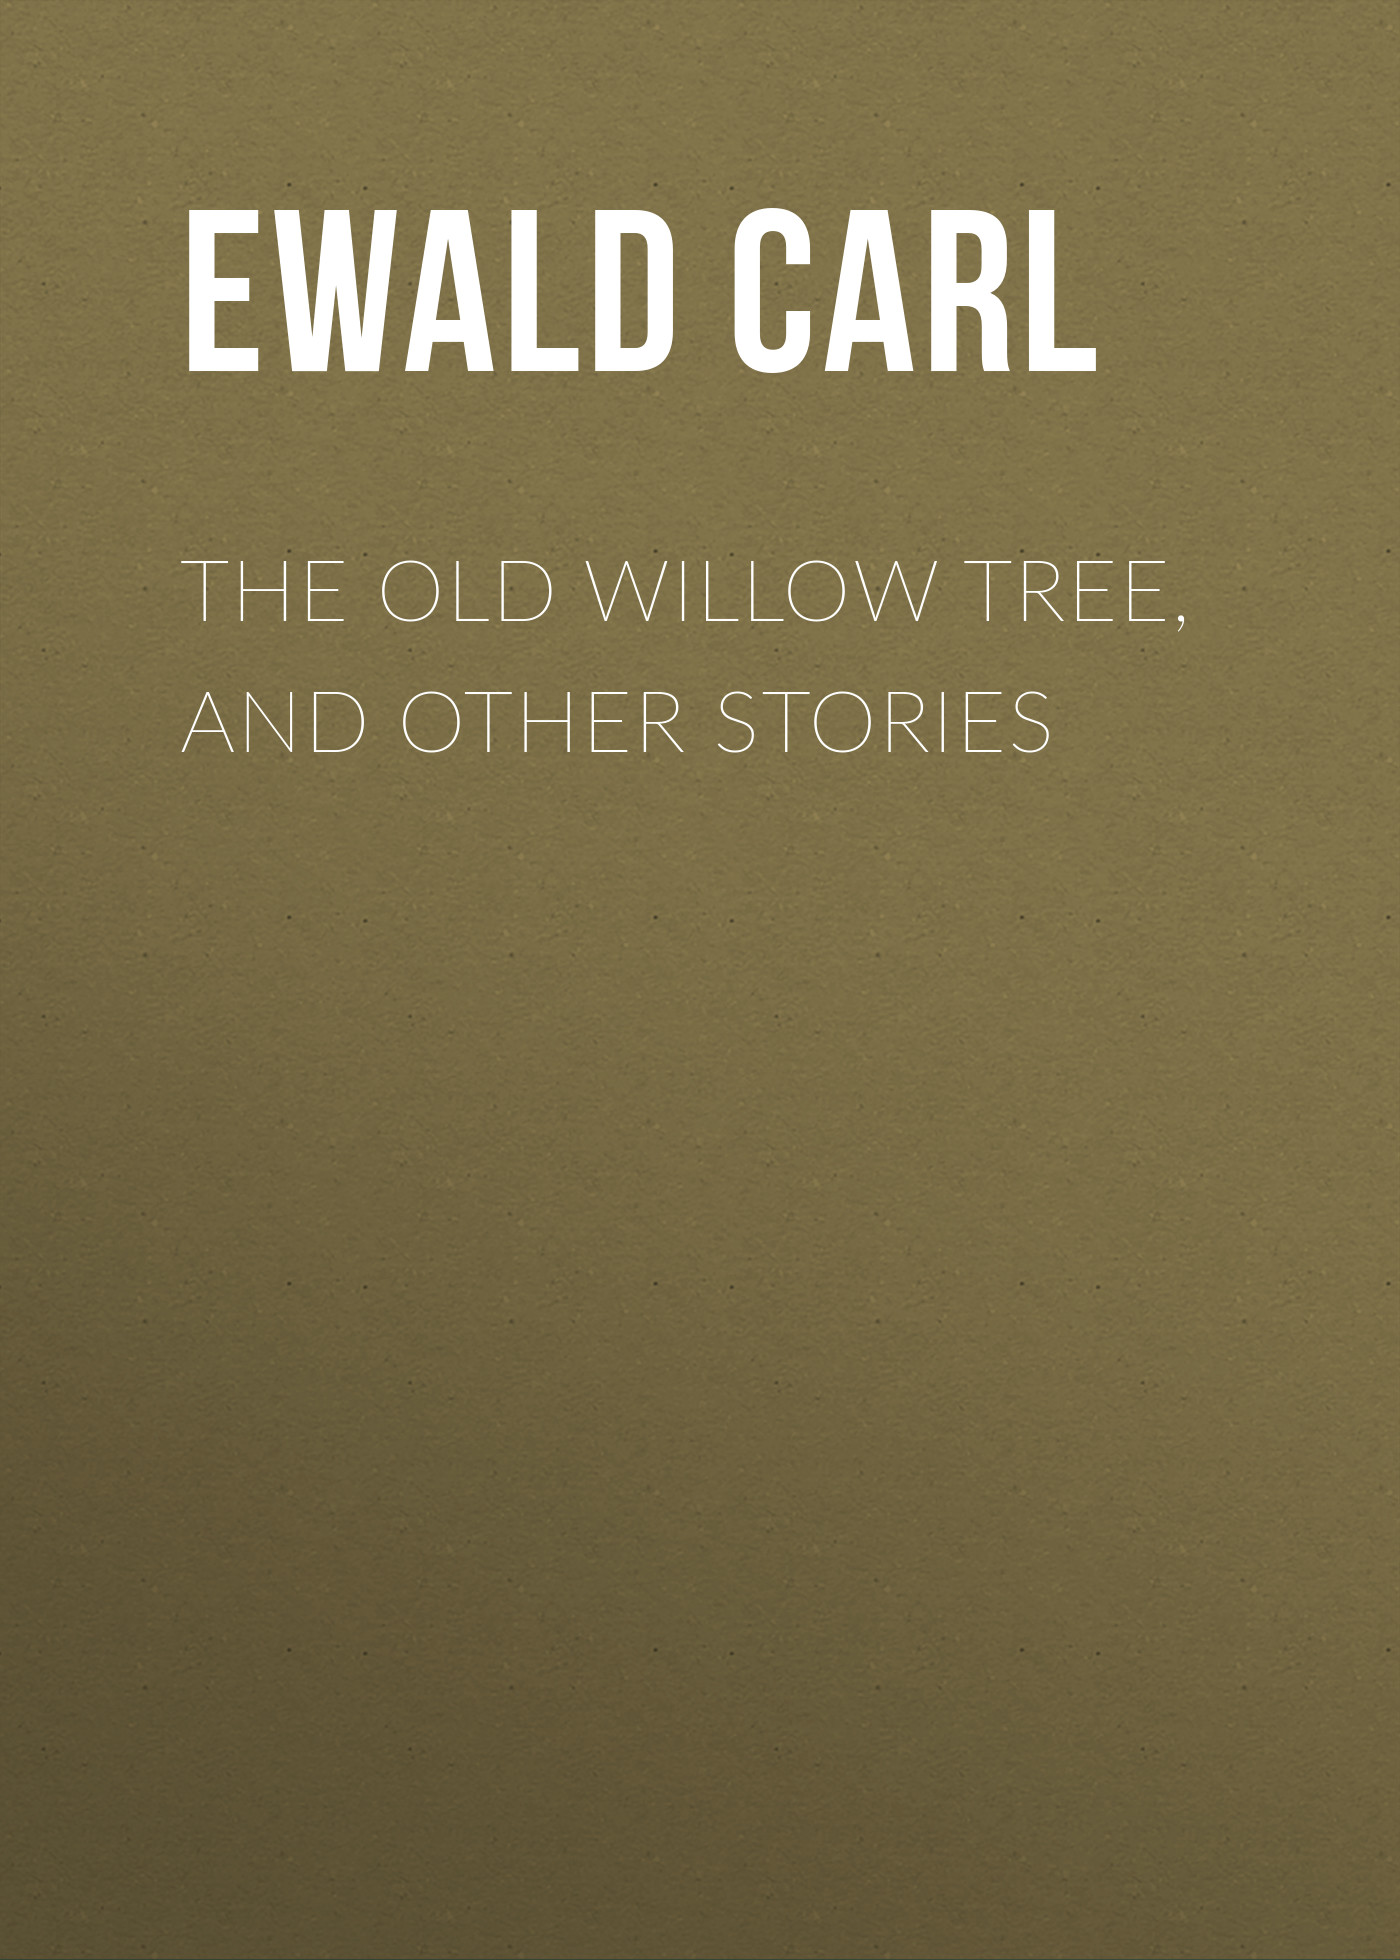 Ewald Carl The Old Willow Tree, and Other Stories cartoon tree duvet cover set